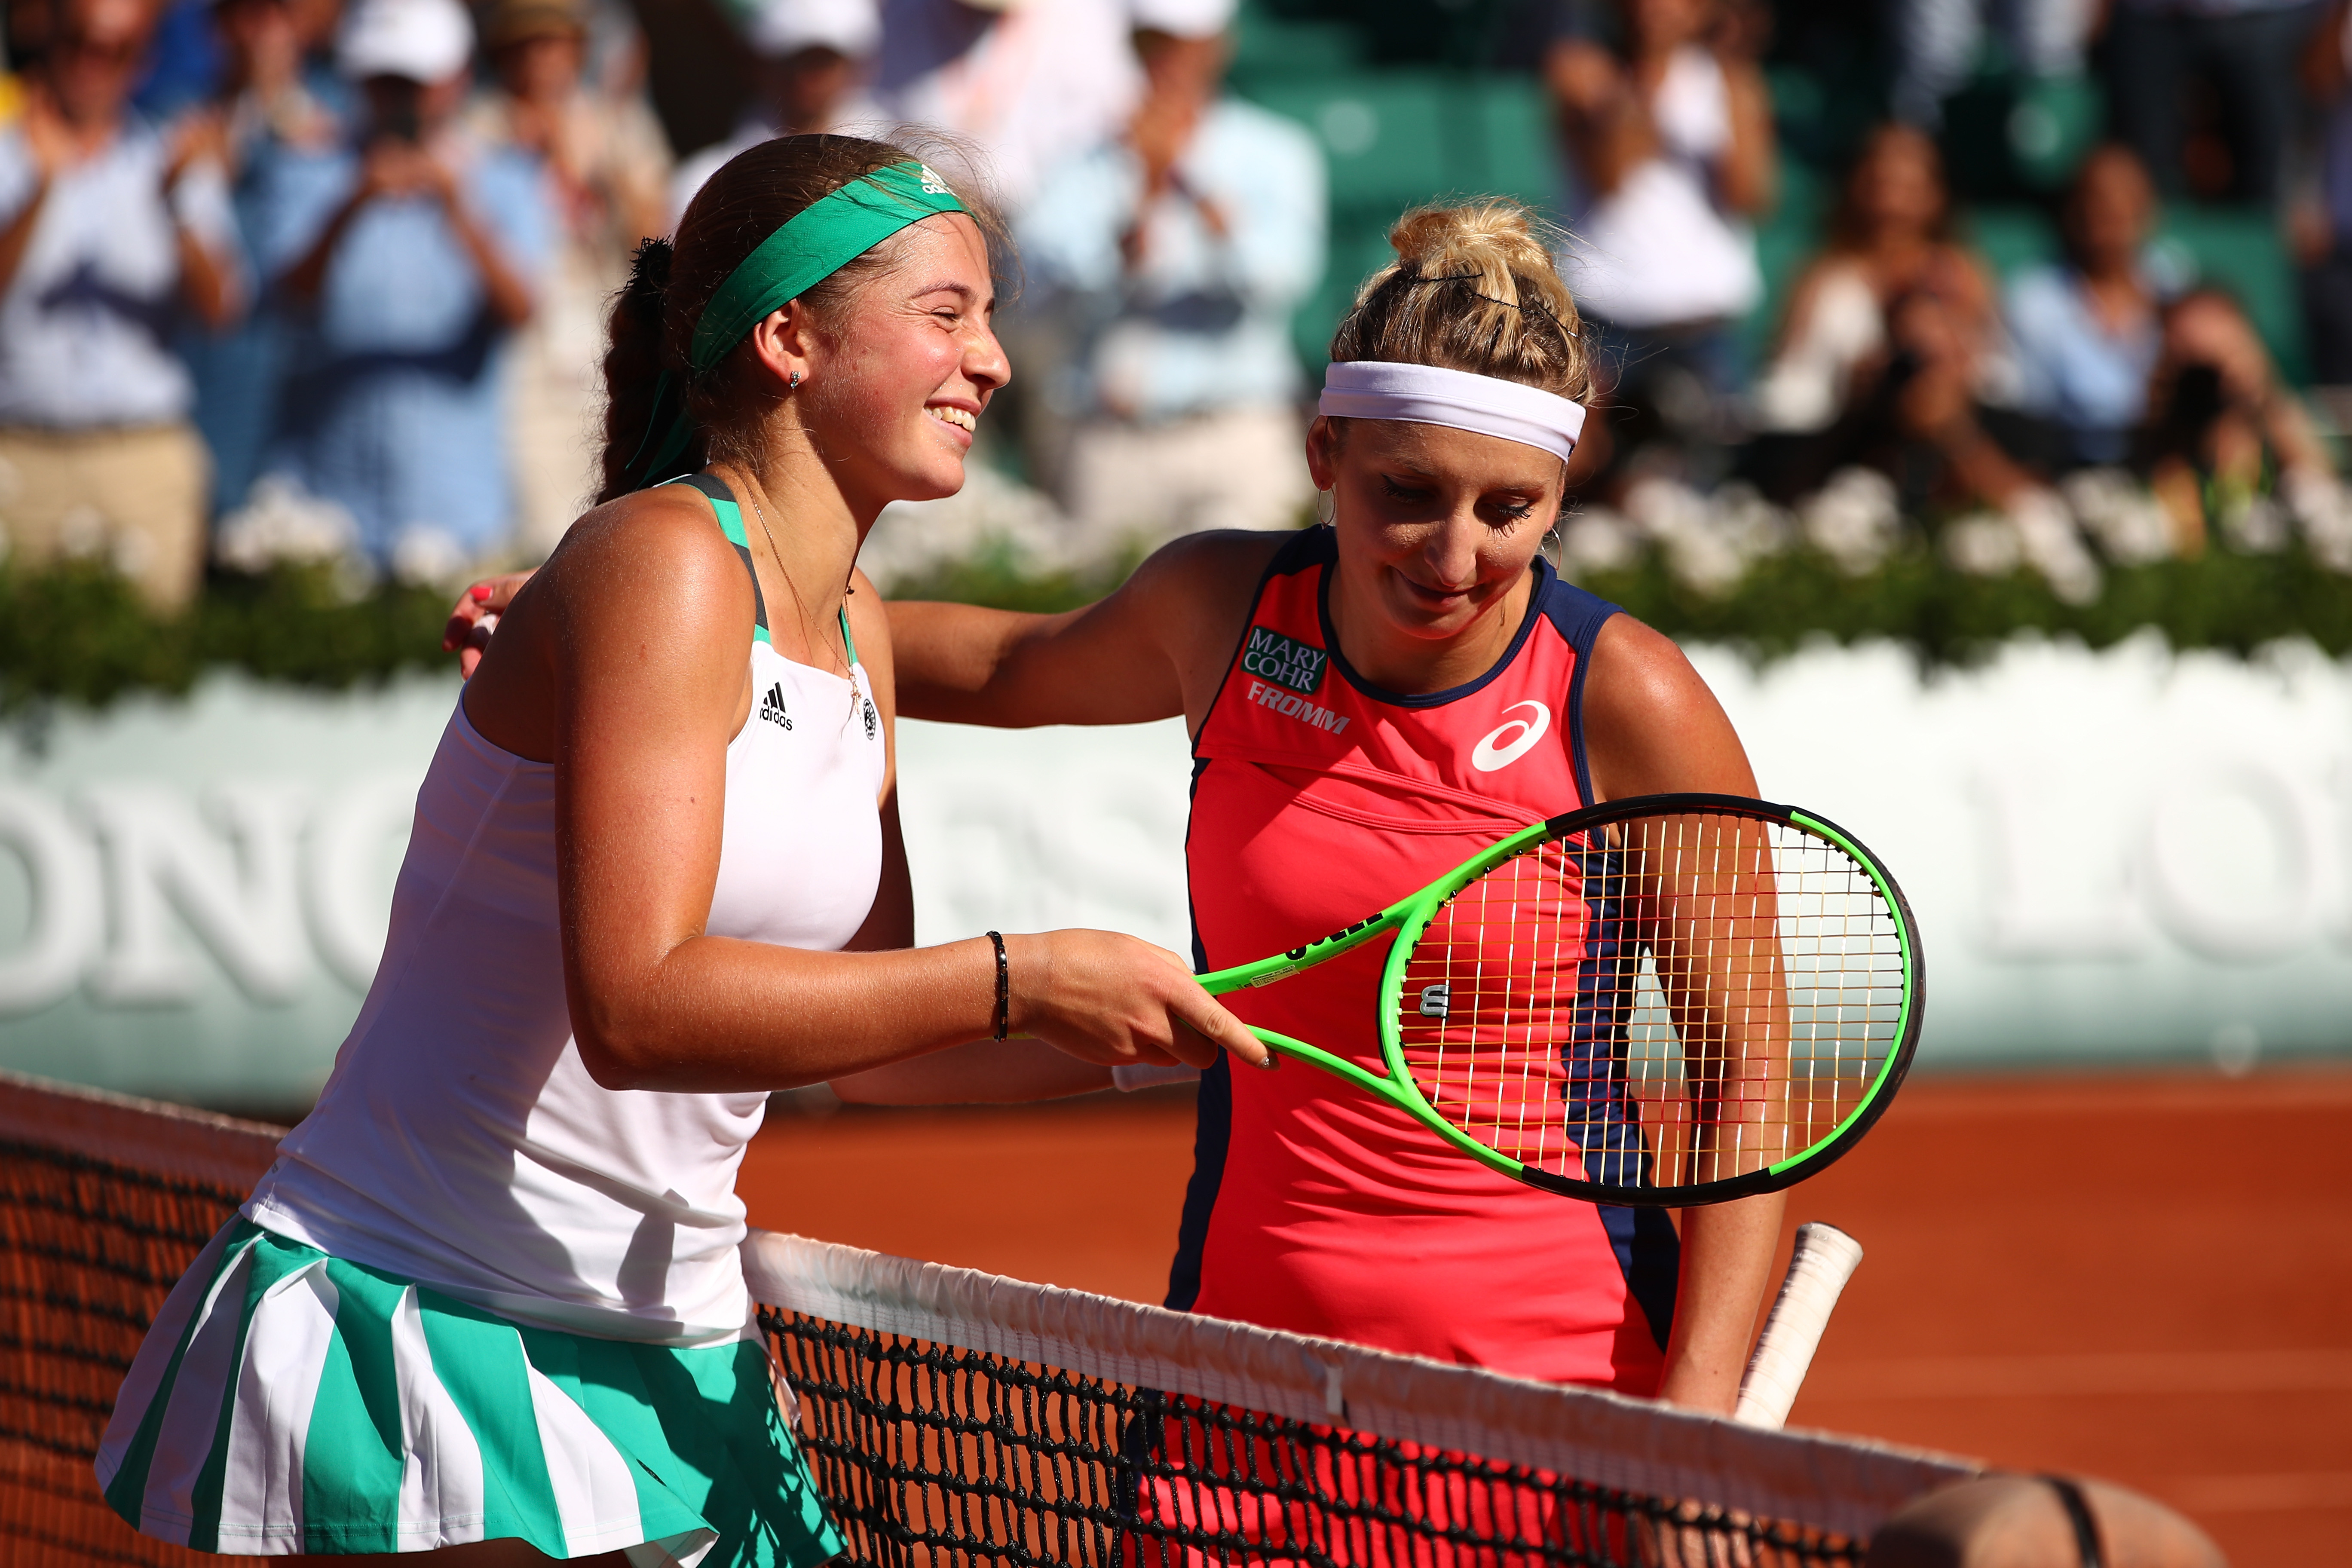 PARIS, FRANCE - JUNE 08: (L-R) Jelena Ostapenko of Latvia shakes hands with Timea Bacsinszky of Switzerland following her victory during their ladies semi final match on day twelve of the 2017 French Open at Roland Garros on June 8, 2017 in Paris, France. (Photo by Clive Brunskill/Getty Images)